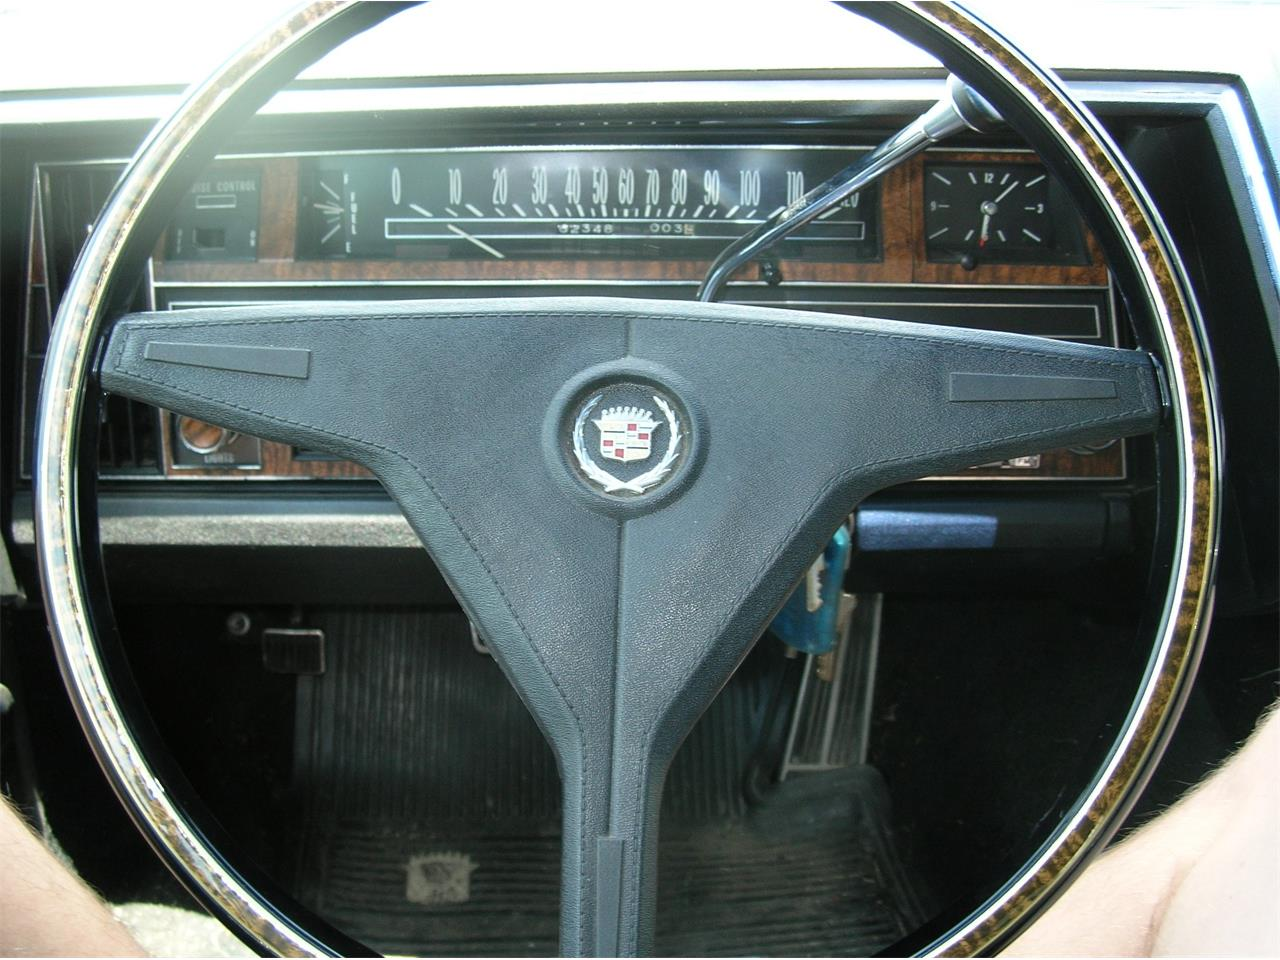 1970 Cadillac Fleetwood for sale in Shamokin, PA – photo 9